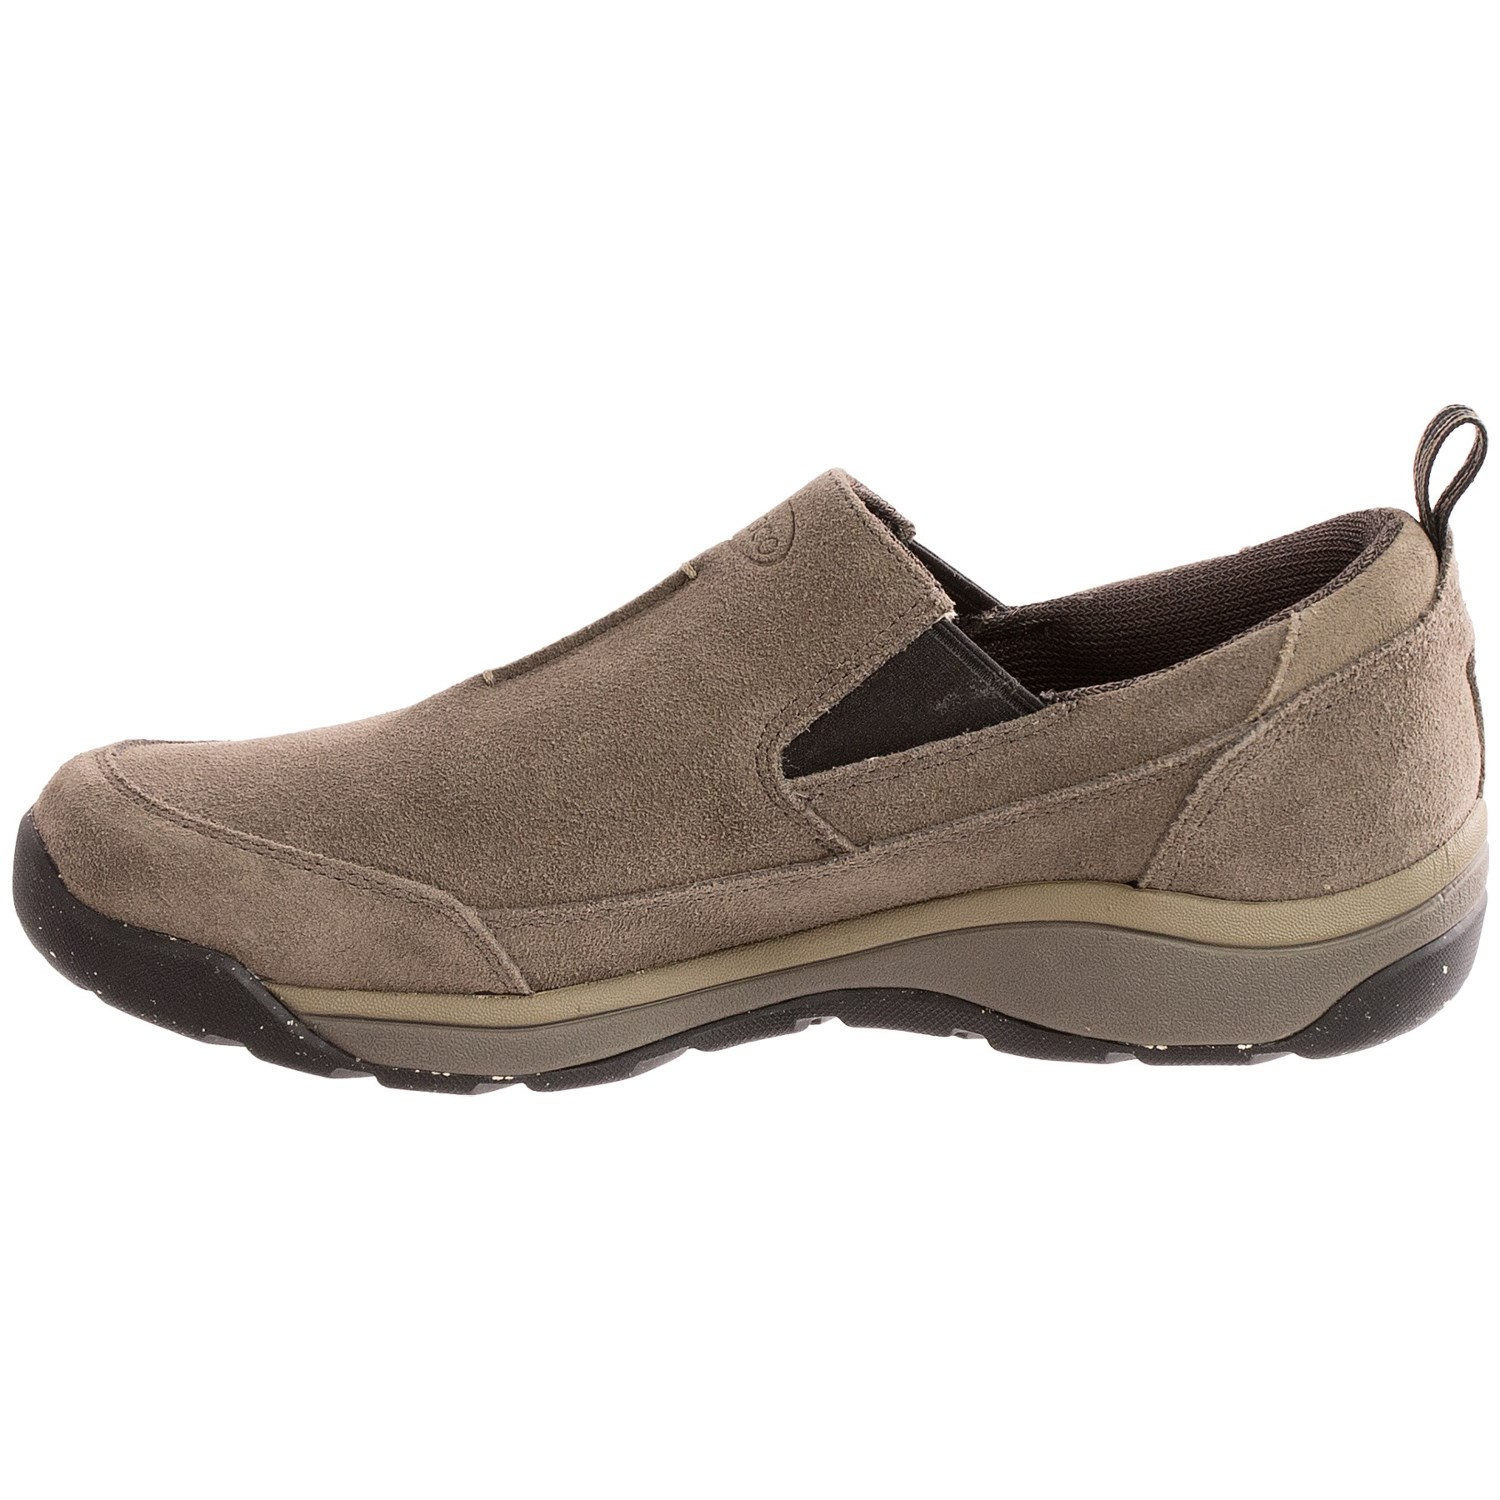 Chaco Thunderhead Shoes Mens